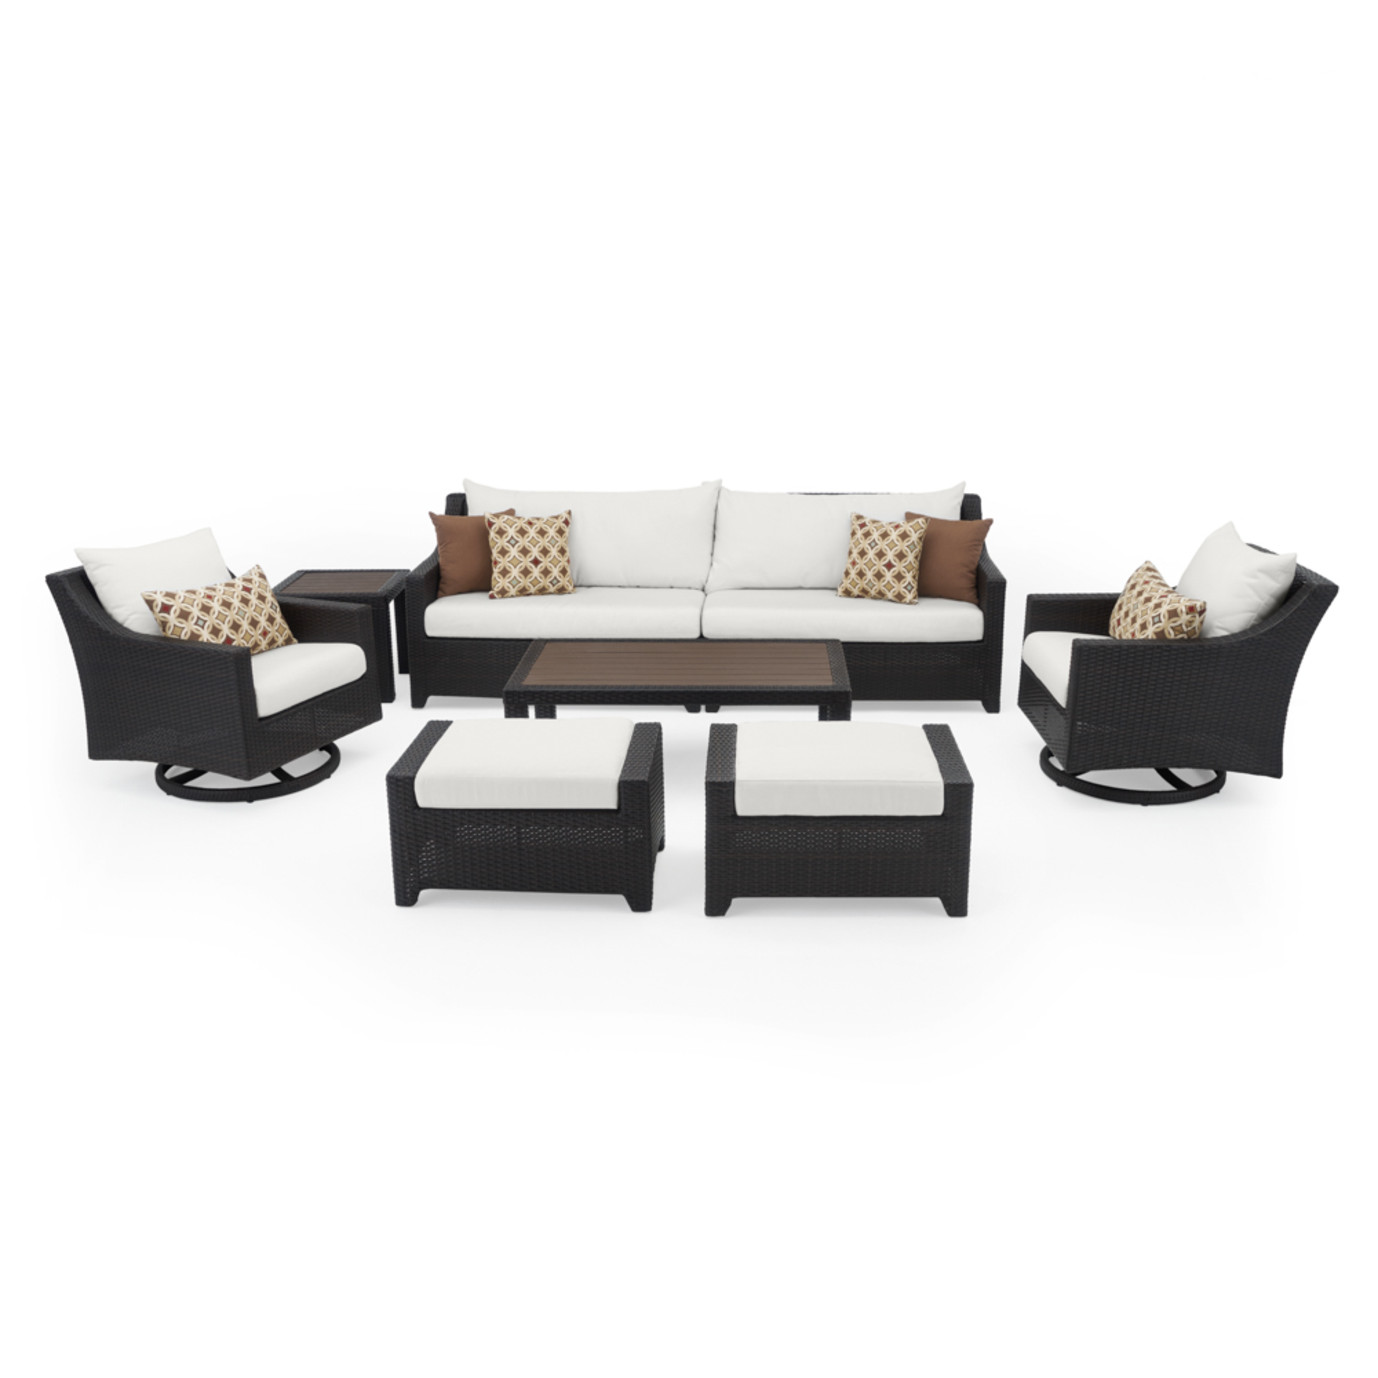 Deco™ Deluxe 8pc Sofa & Club Chair Set - Moroccan Cream